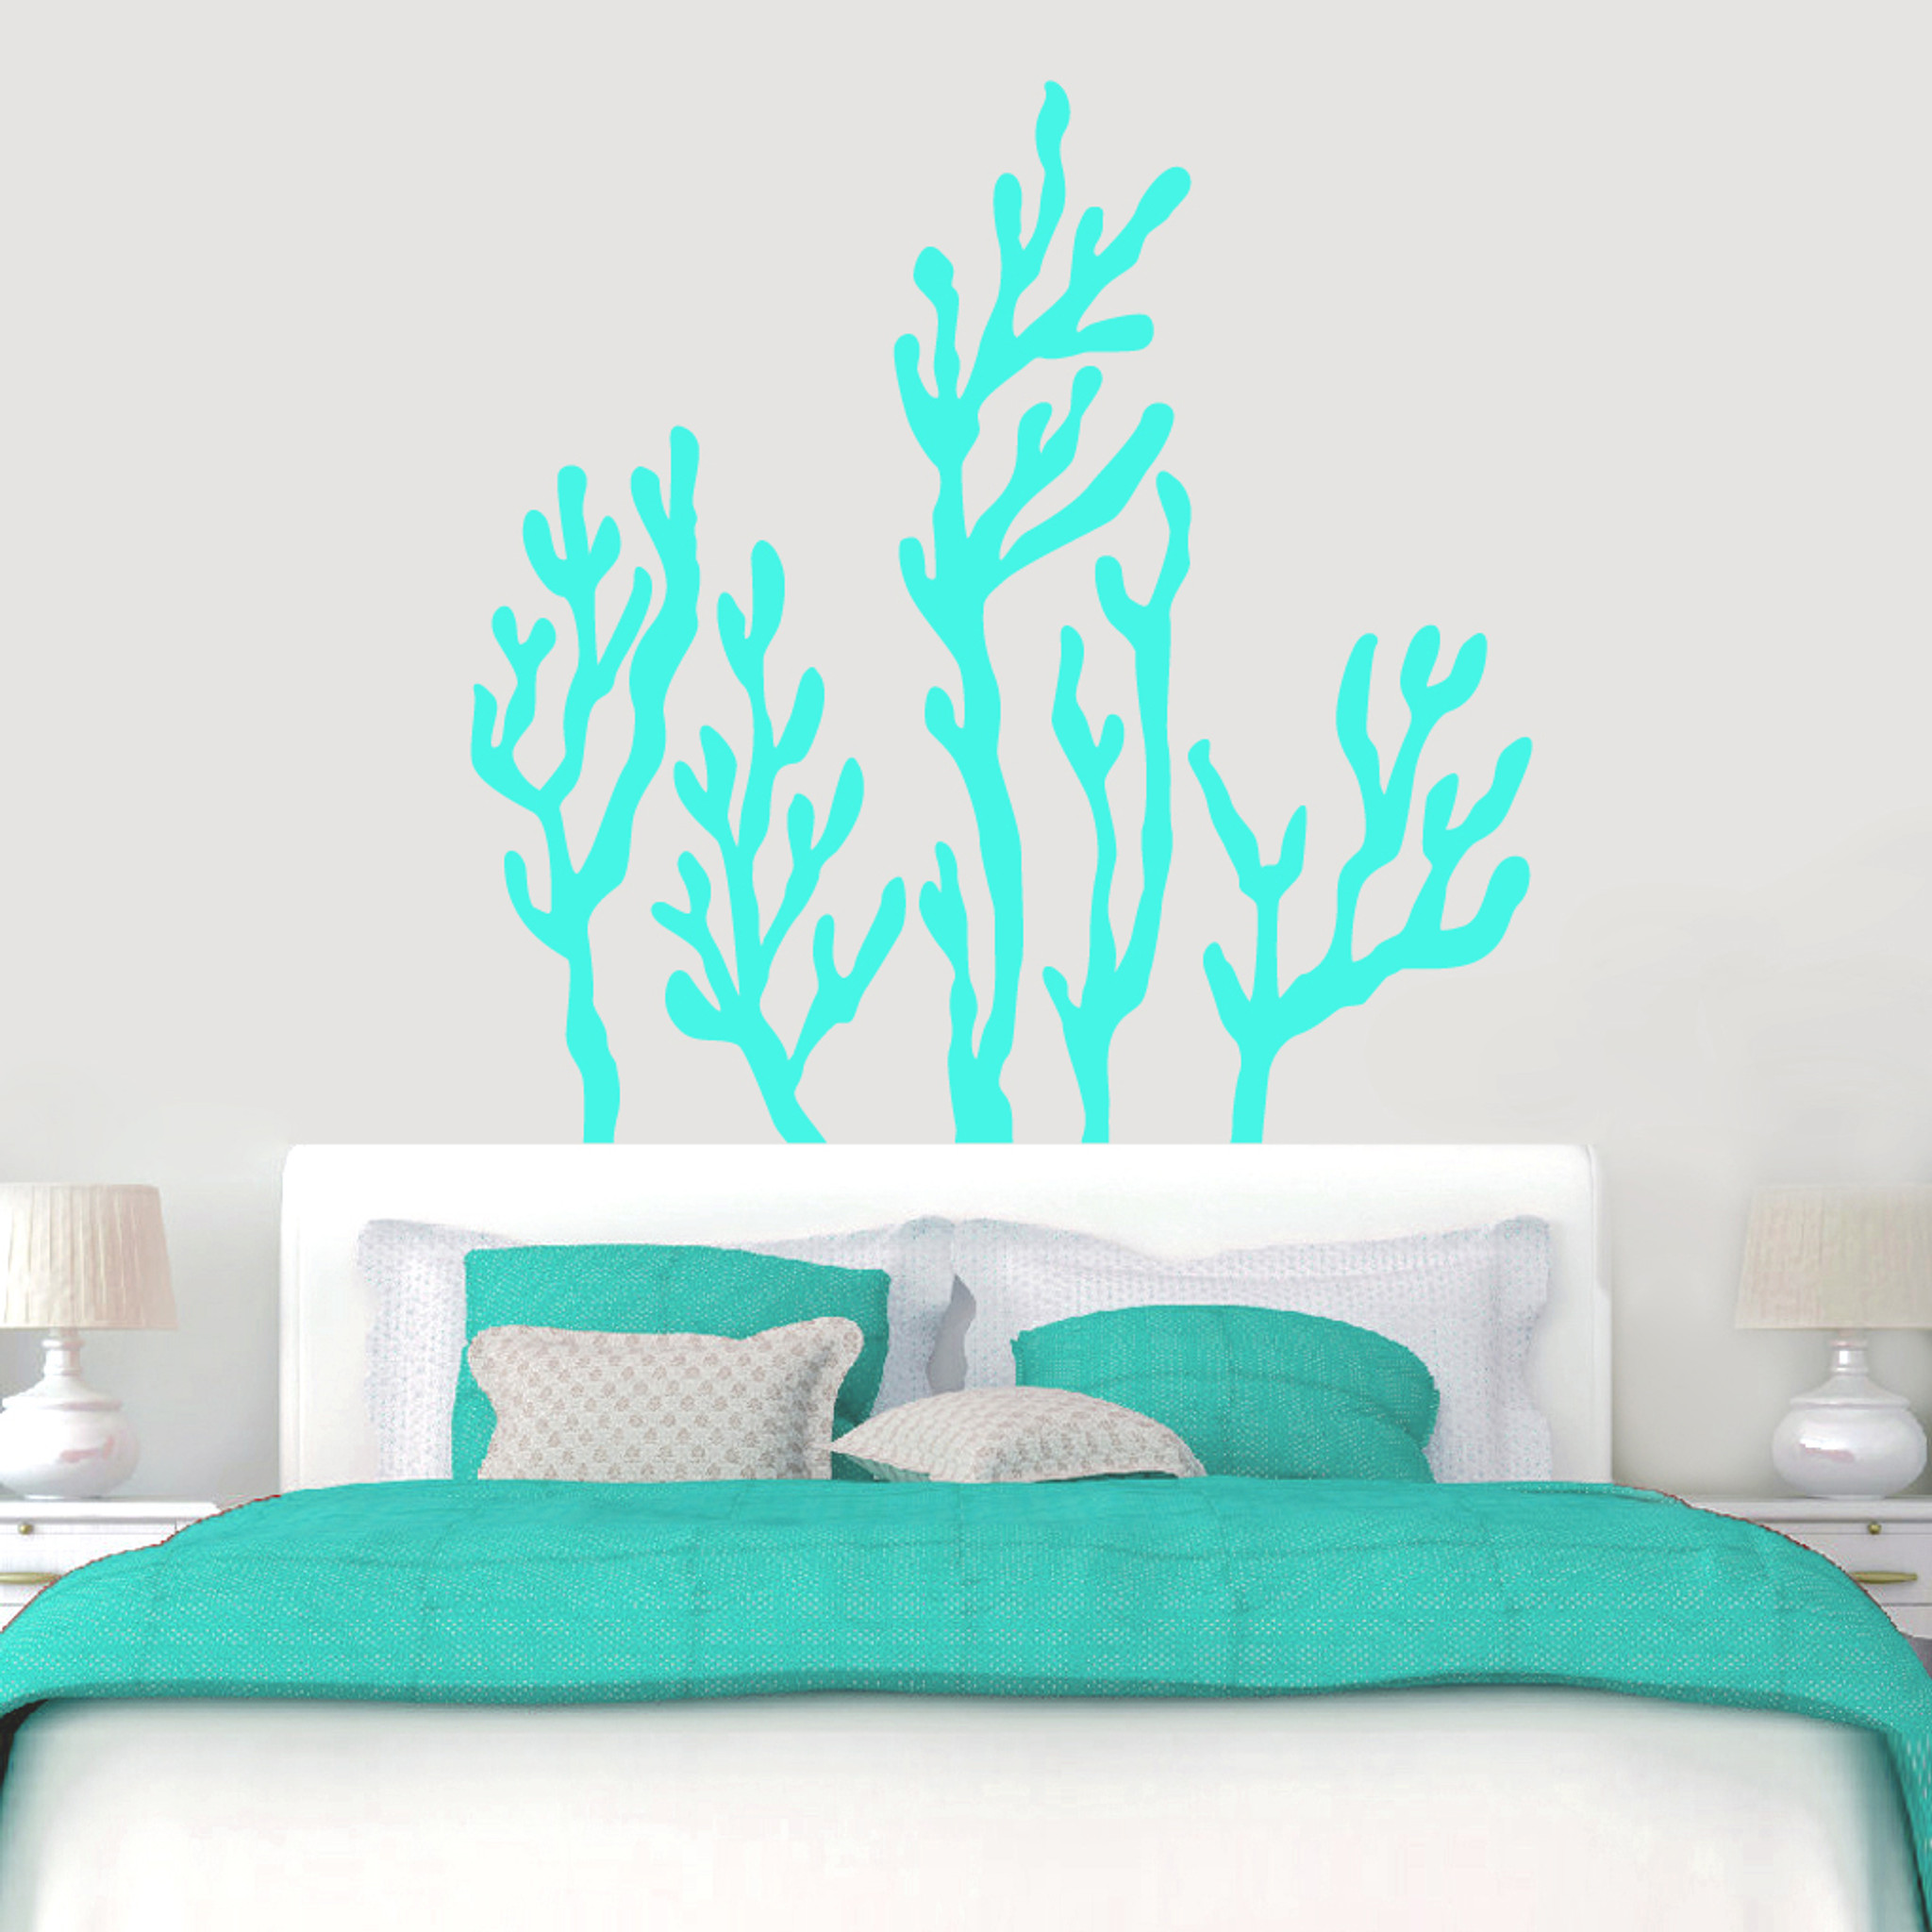 Coral Reef Wall Decals Wall Decor Stickers